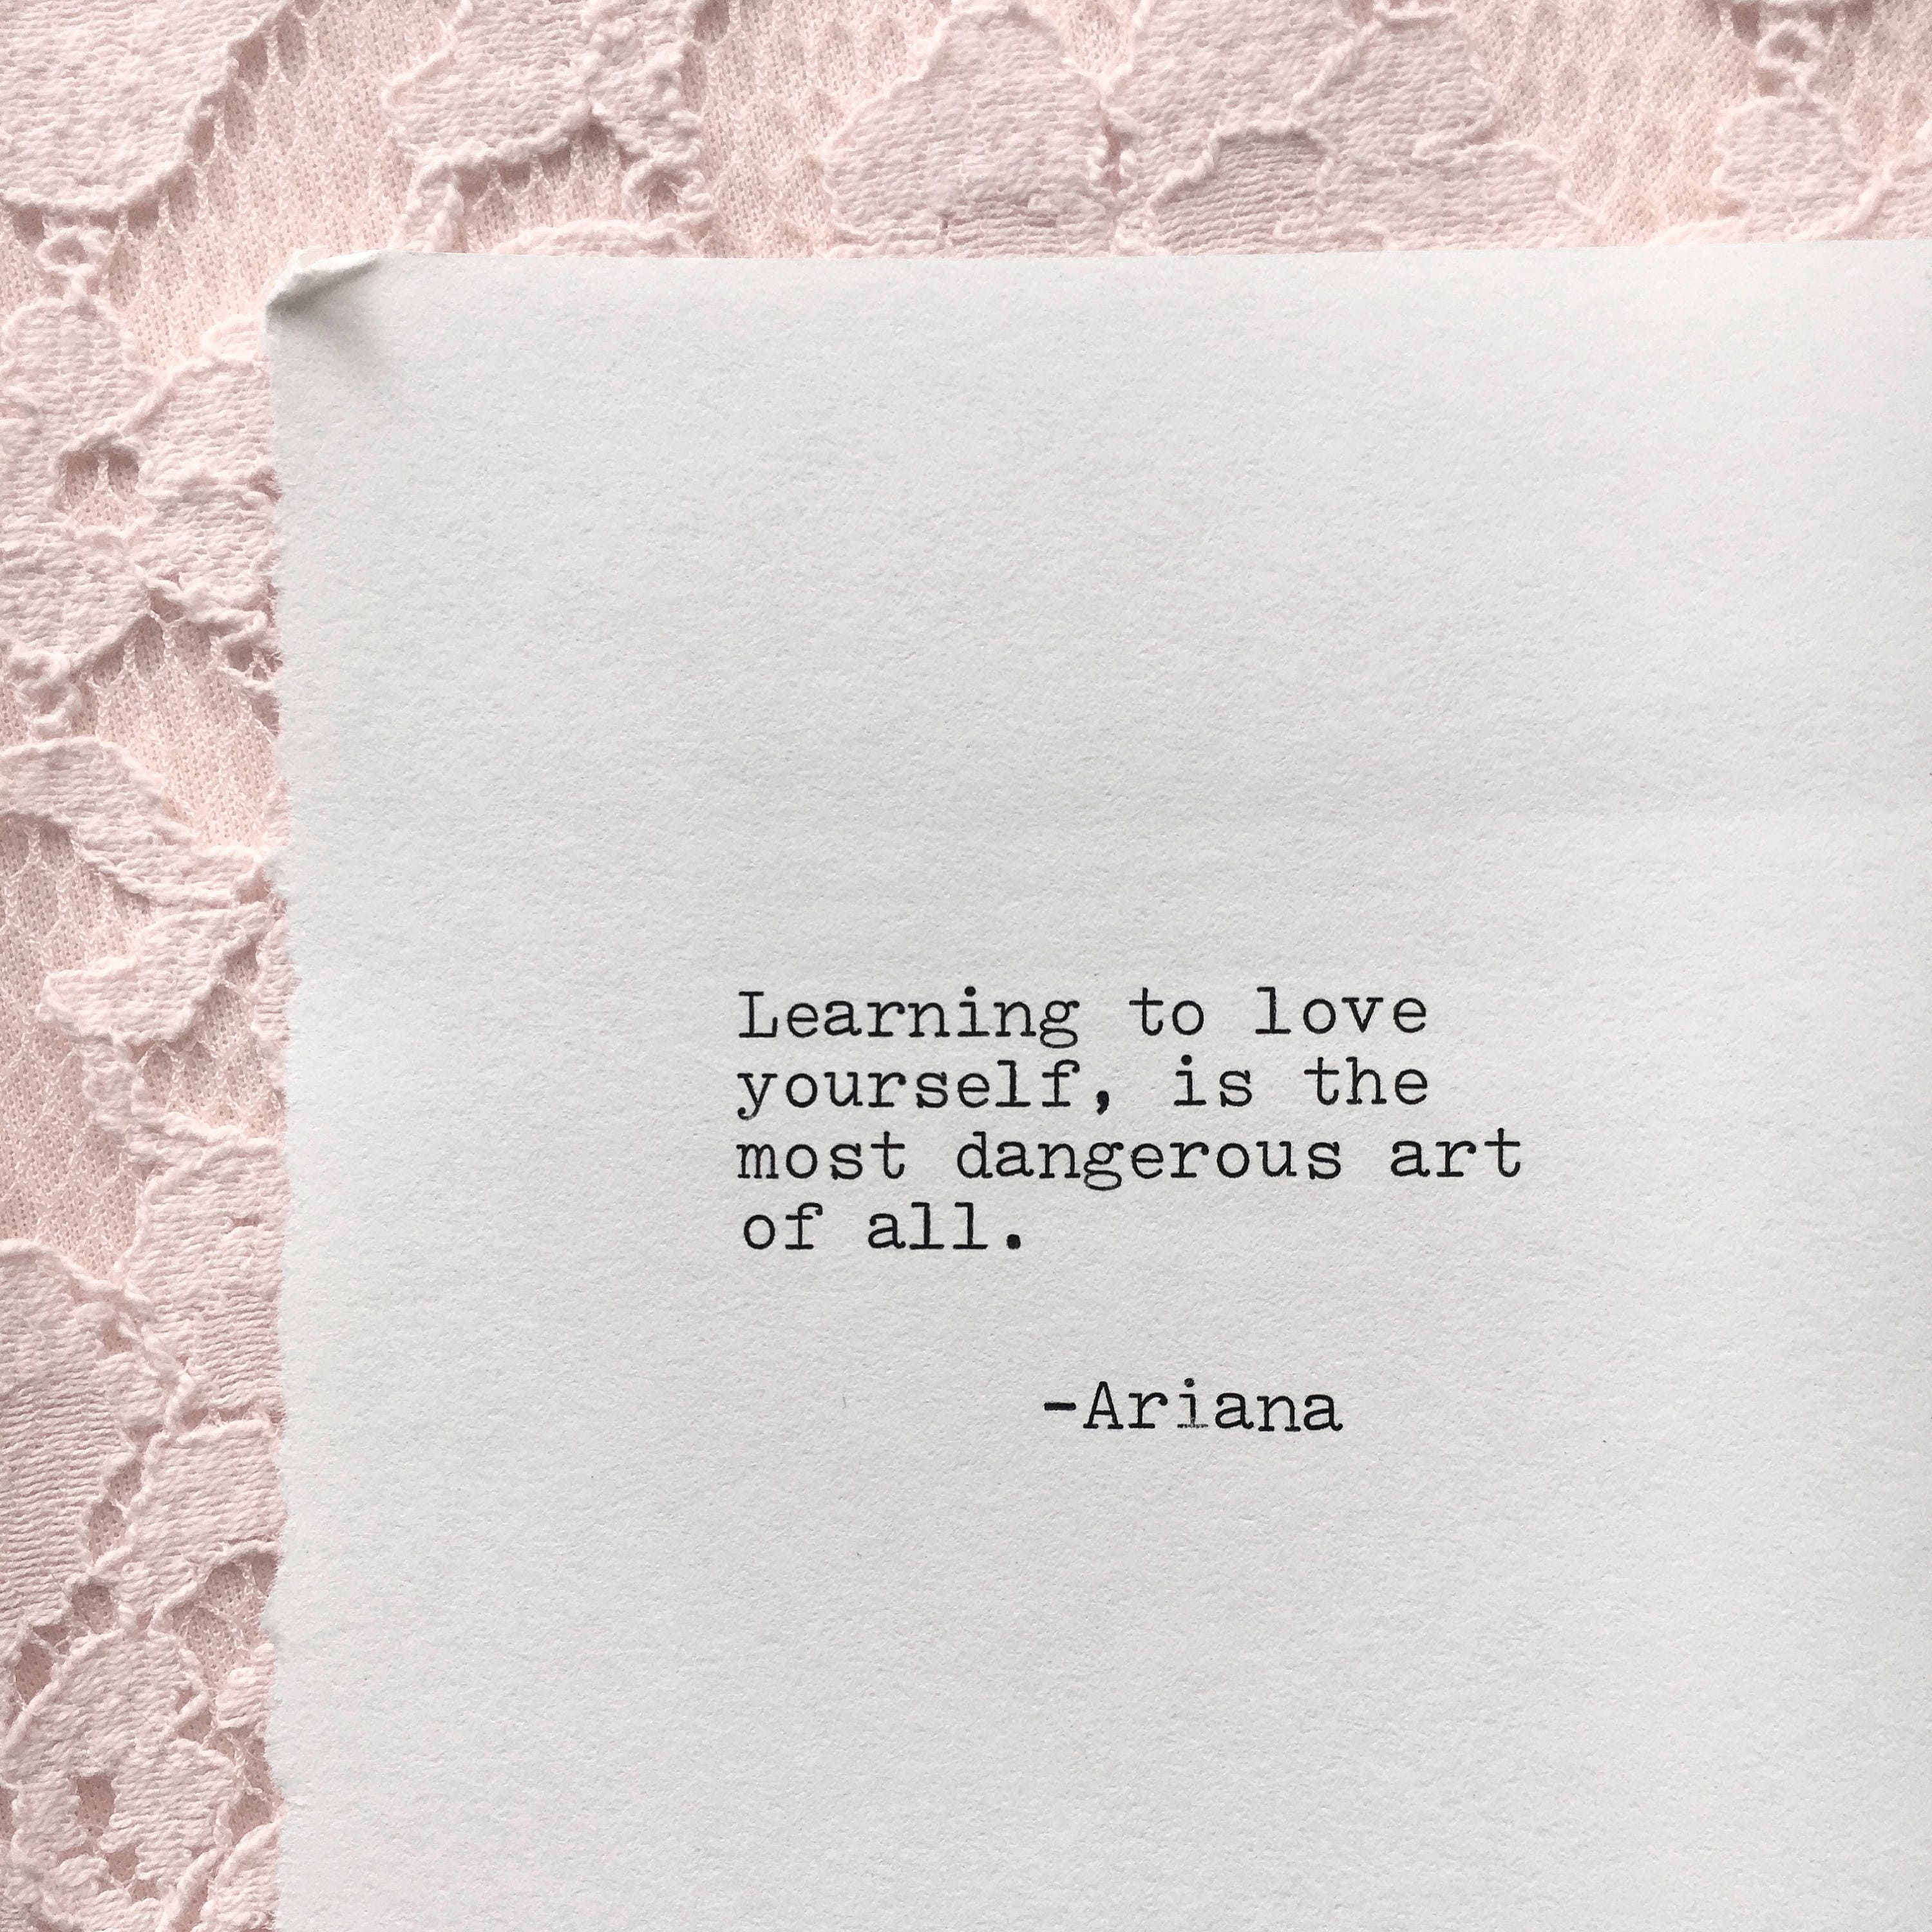 Learning To Love Yourself Quotes She Made Broken Look Beautiful Poem Love Poem Original Poetry